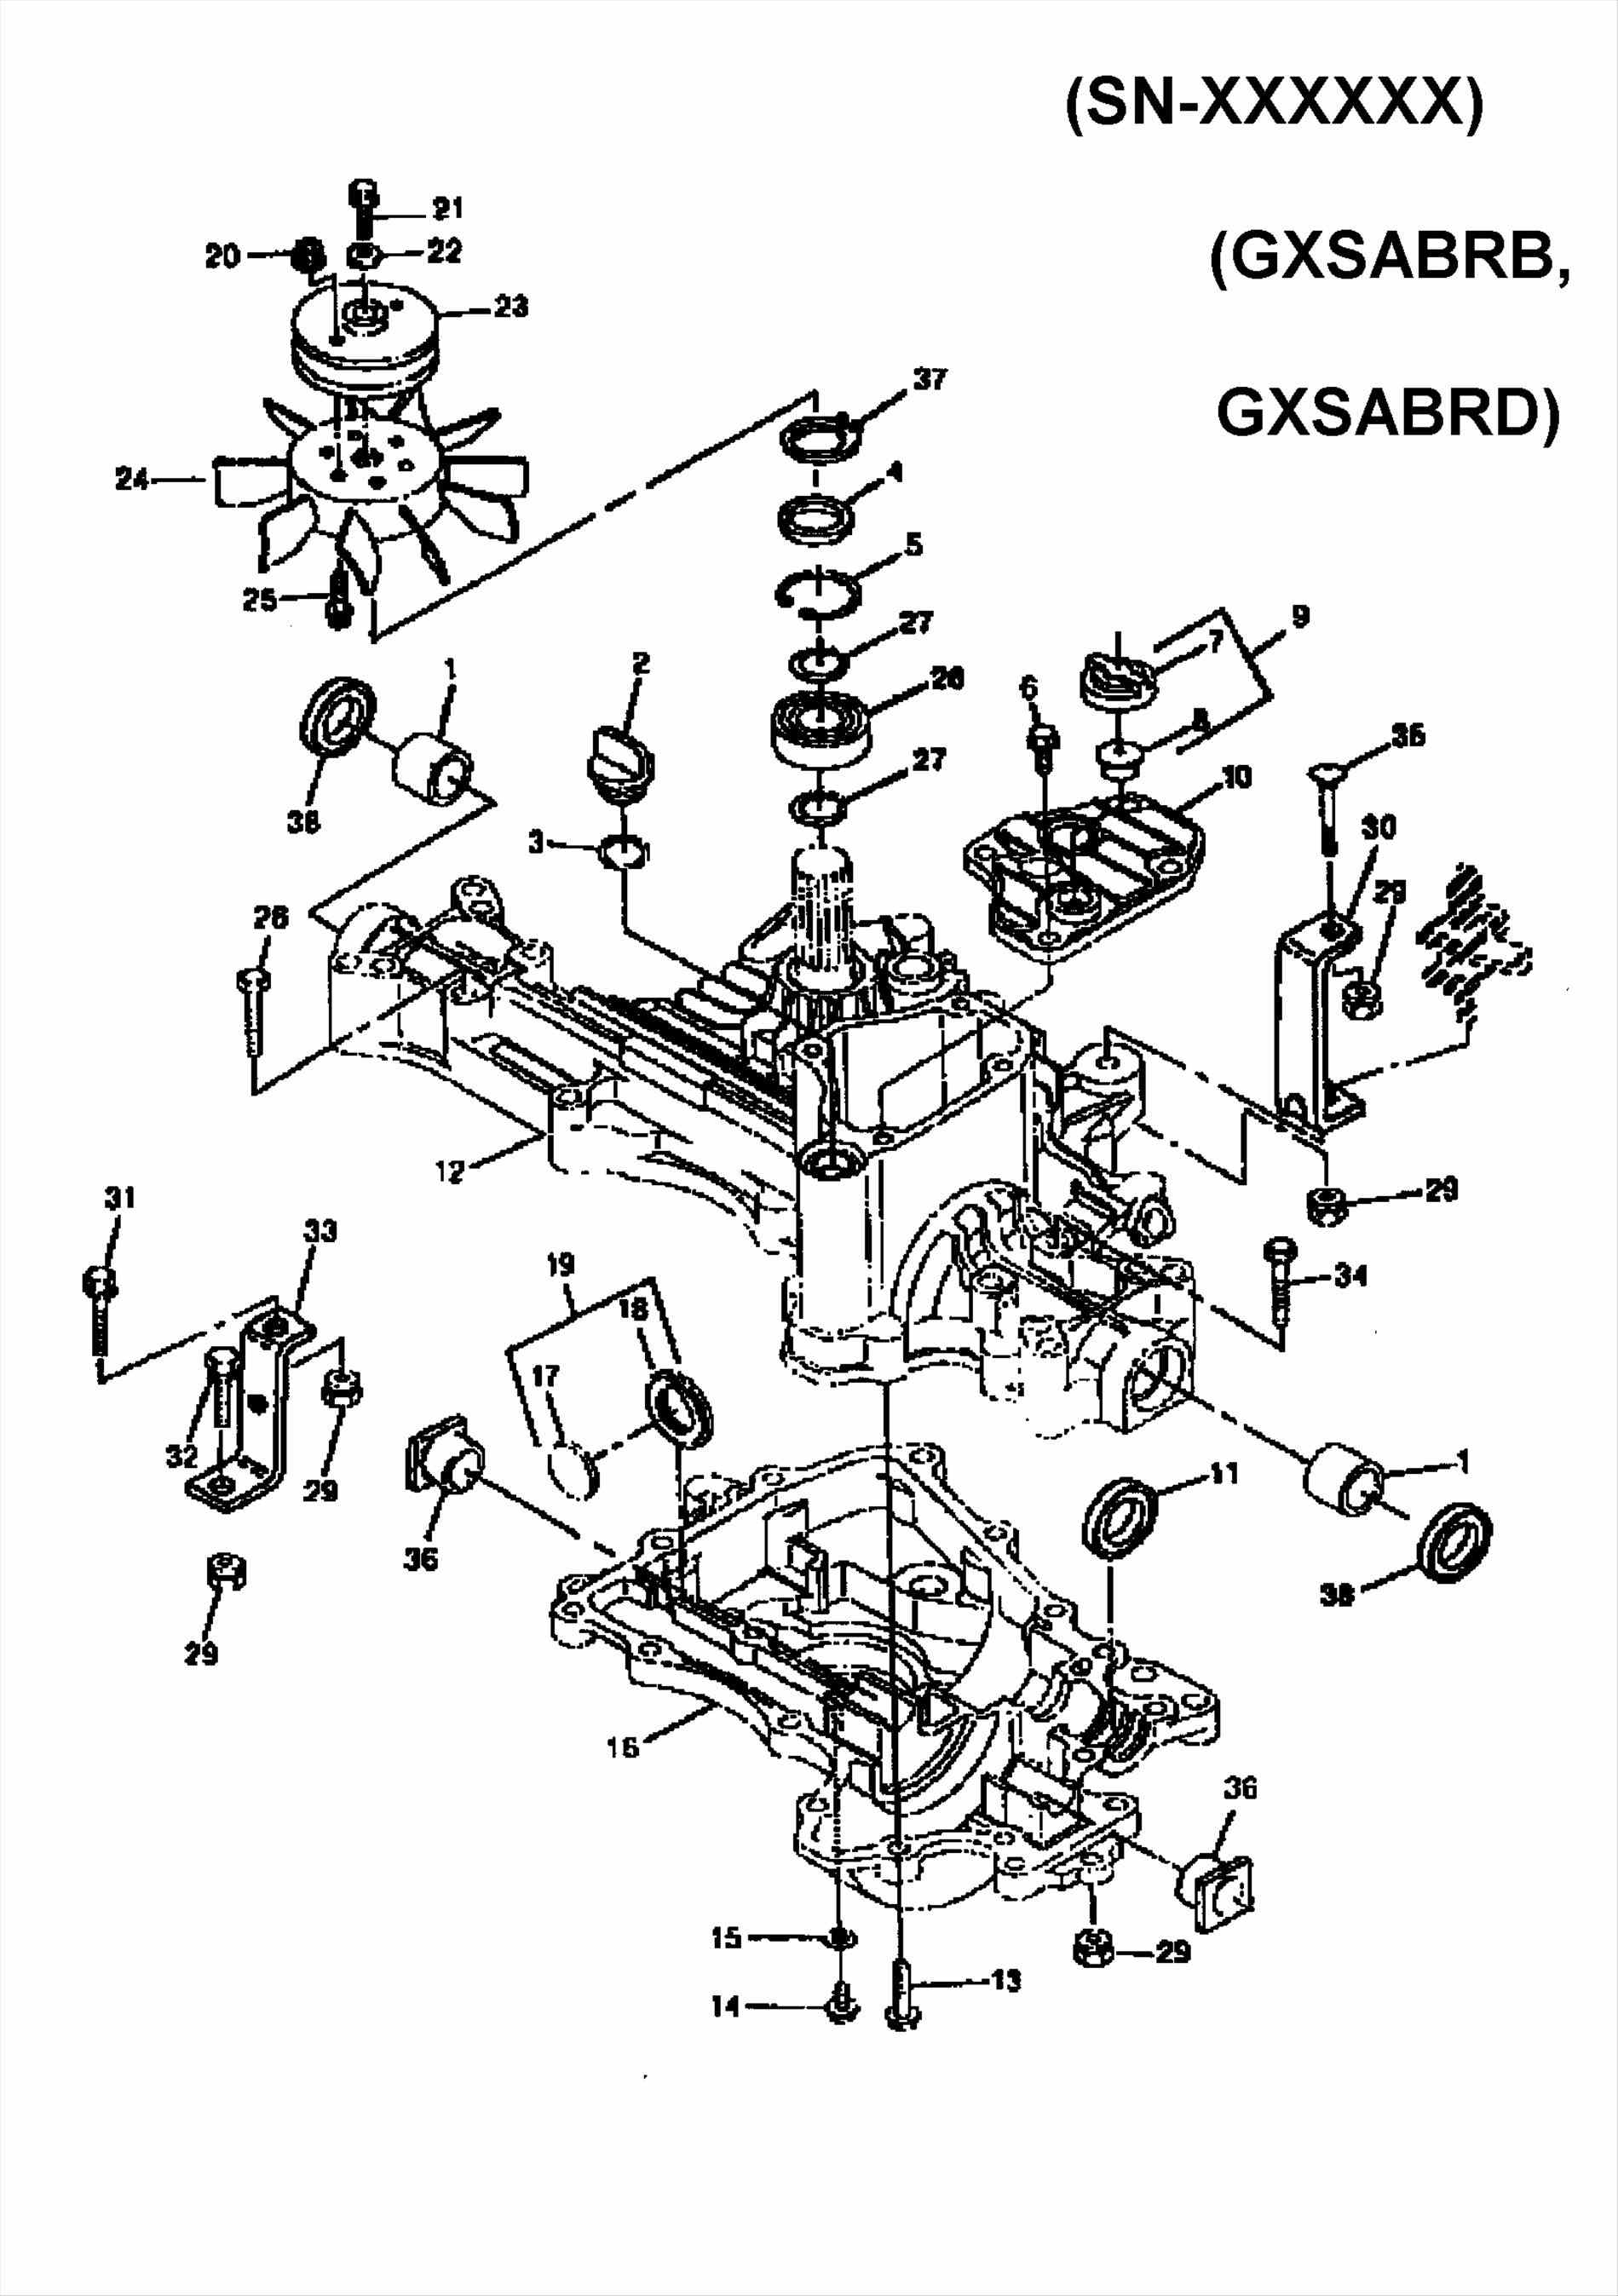 sears lt1000 riding mower wiring diagram riding mower engine diagram craftsman riding lawn mower parts diagram automotive